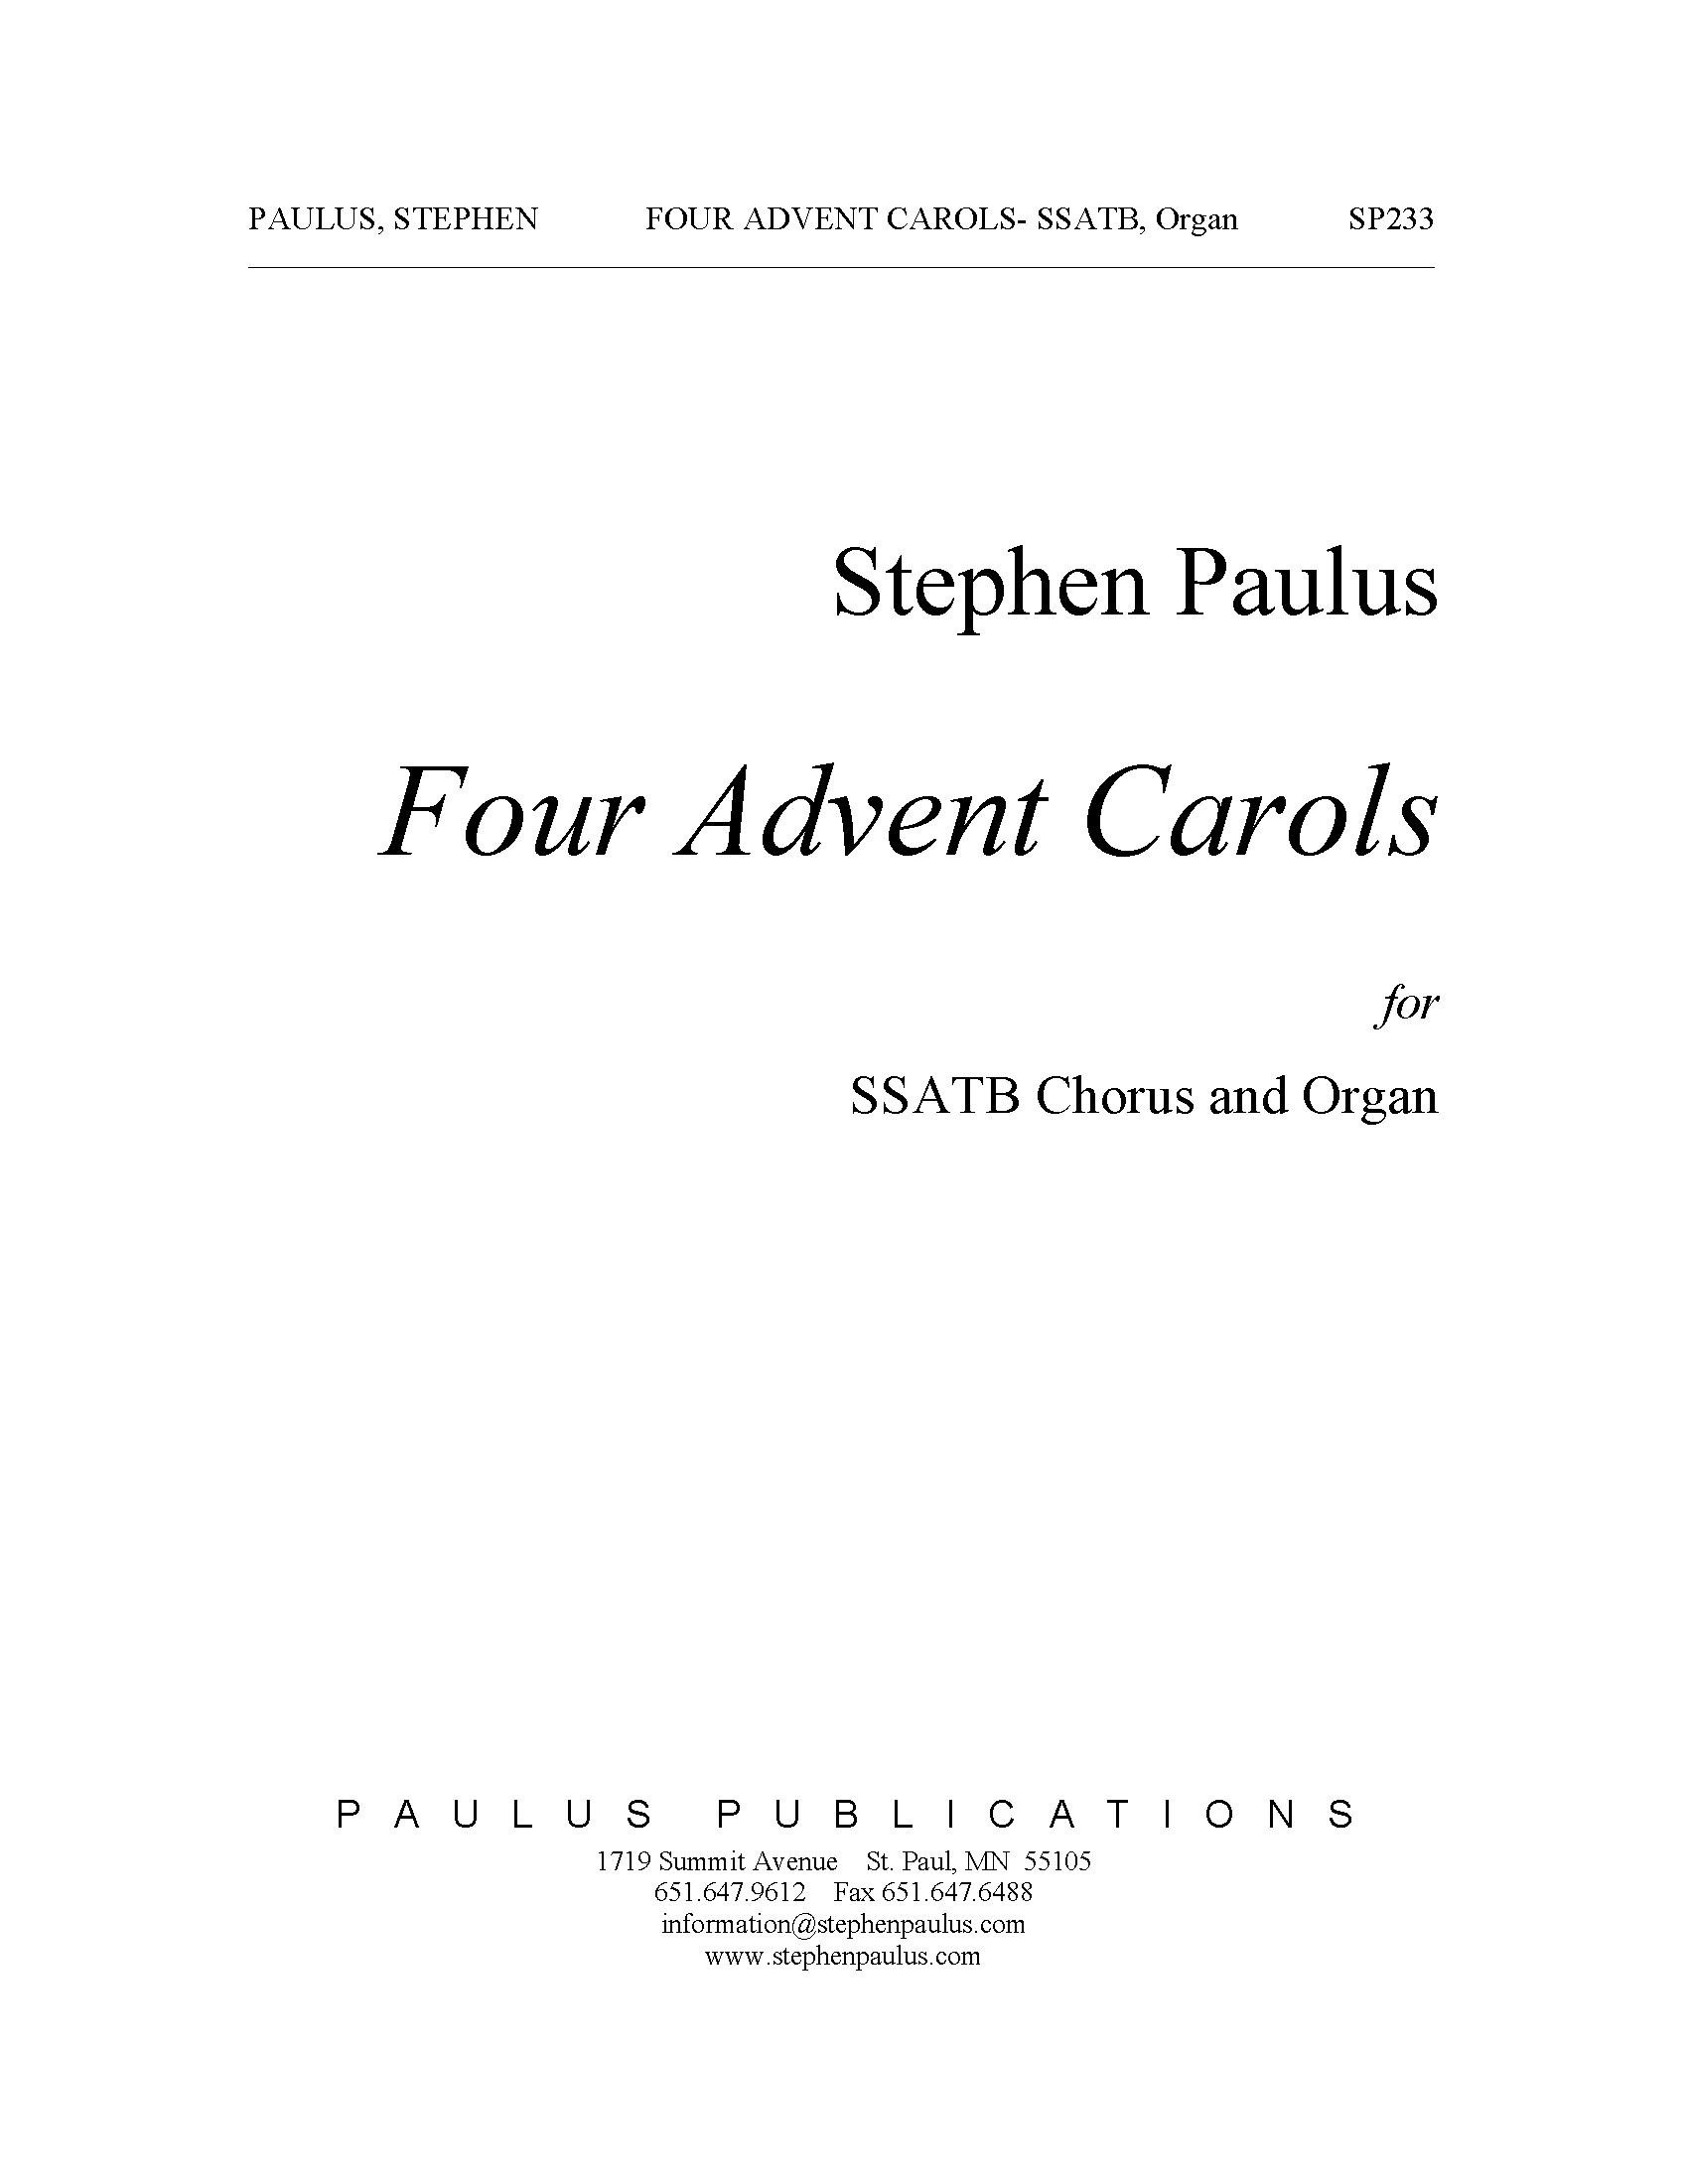 Four Advent Carols for SSATB & Organ